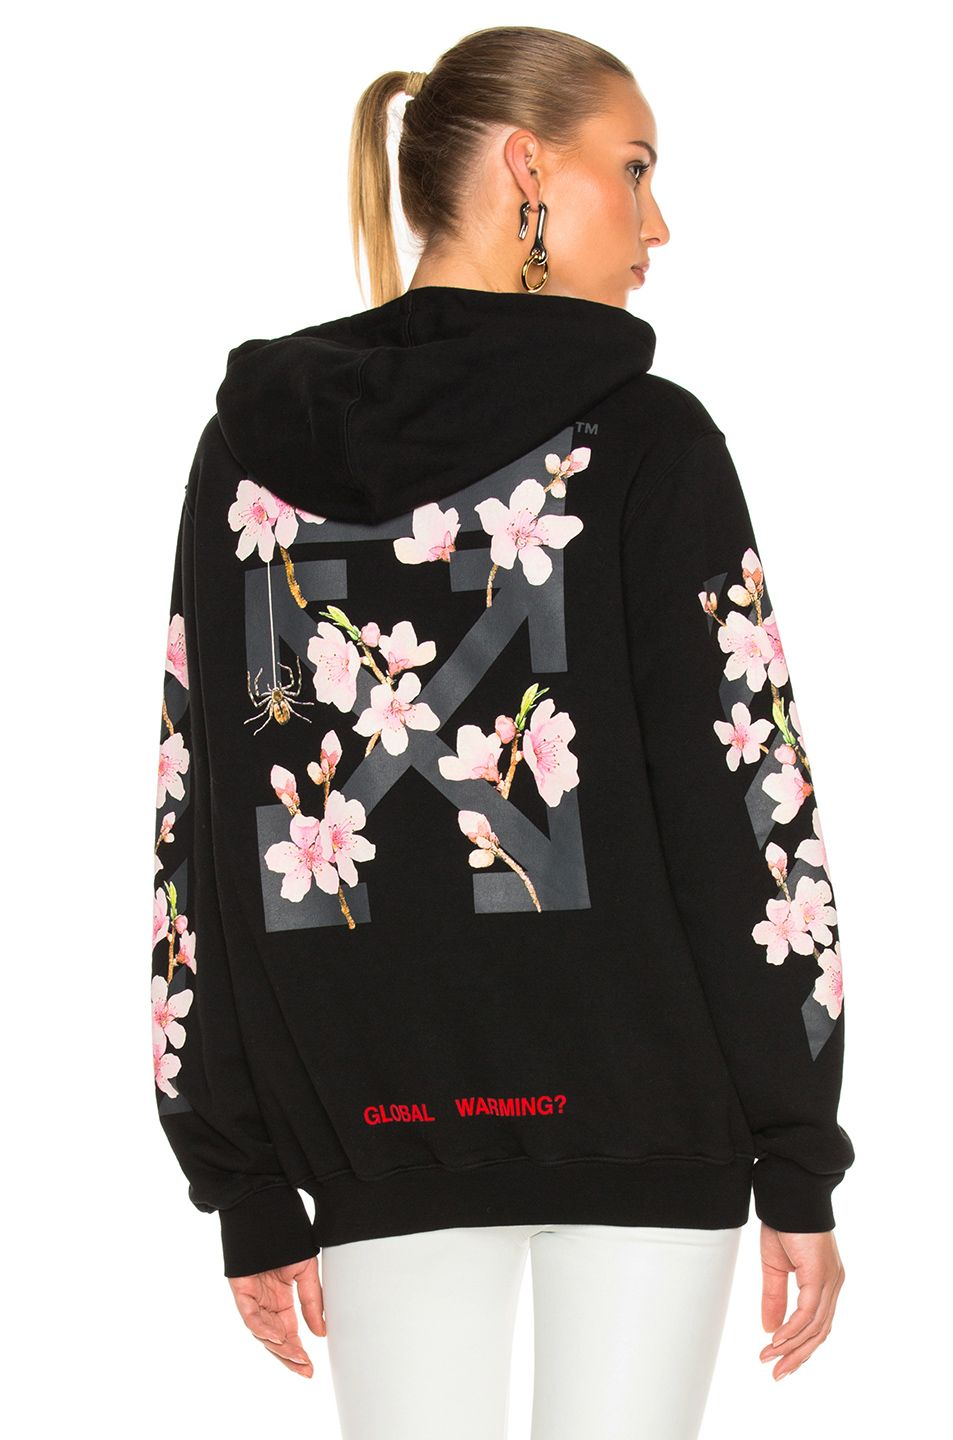 Off White Off White Cloth In 2021 Girls White Hoodie Off White Hoodie Cherry Blossom Shirt [ 1440 x 953 Pixel ]